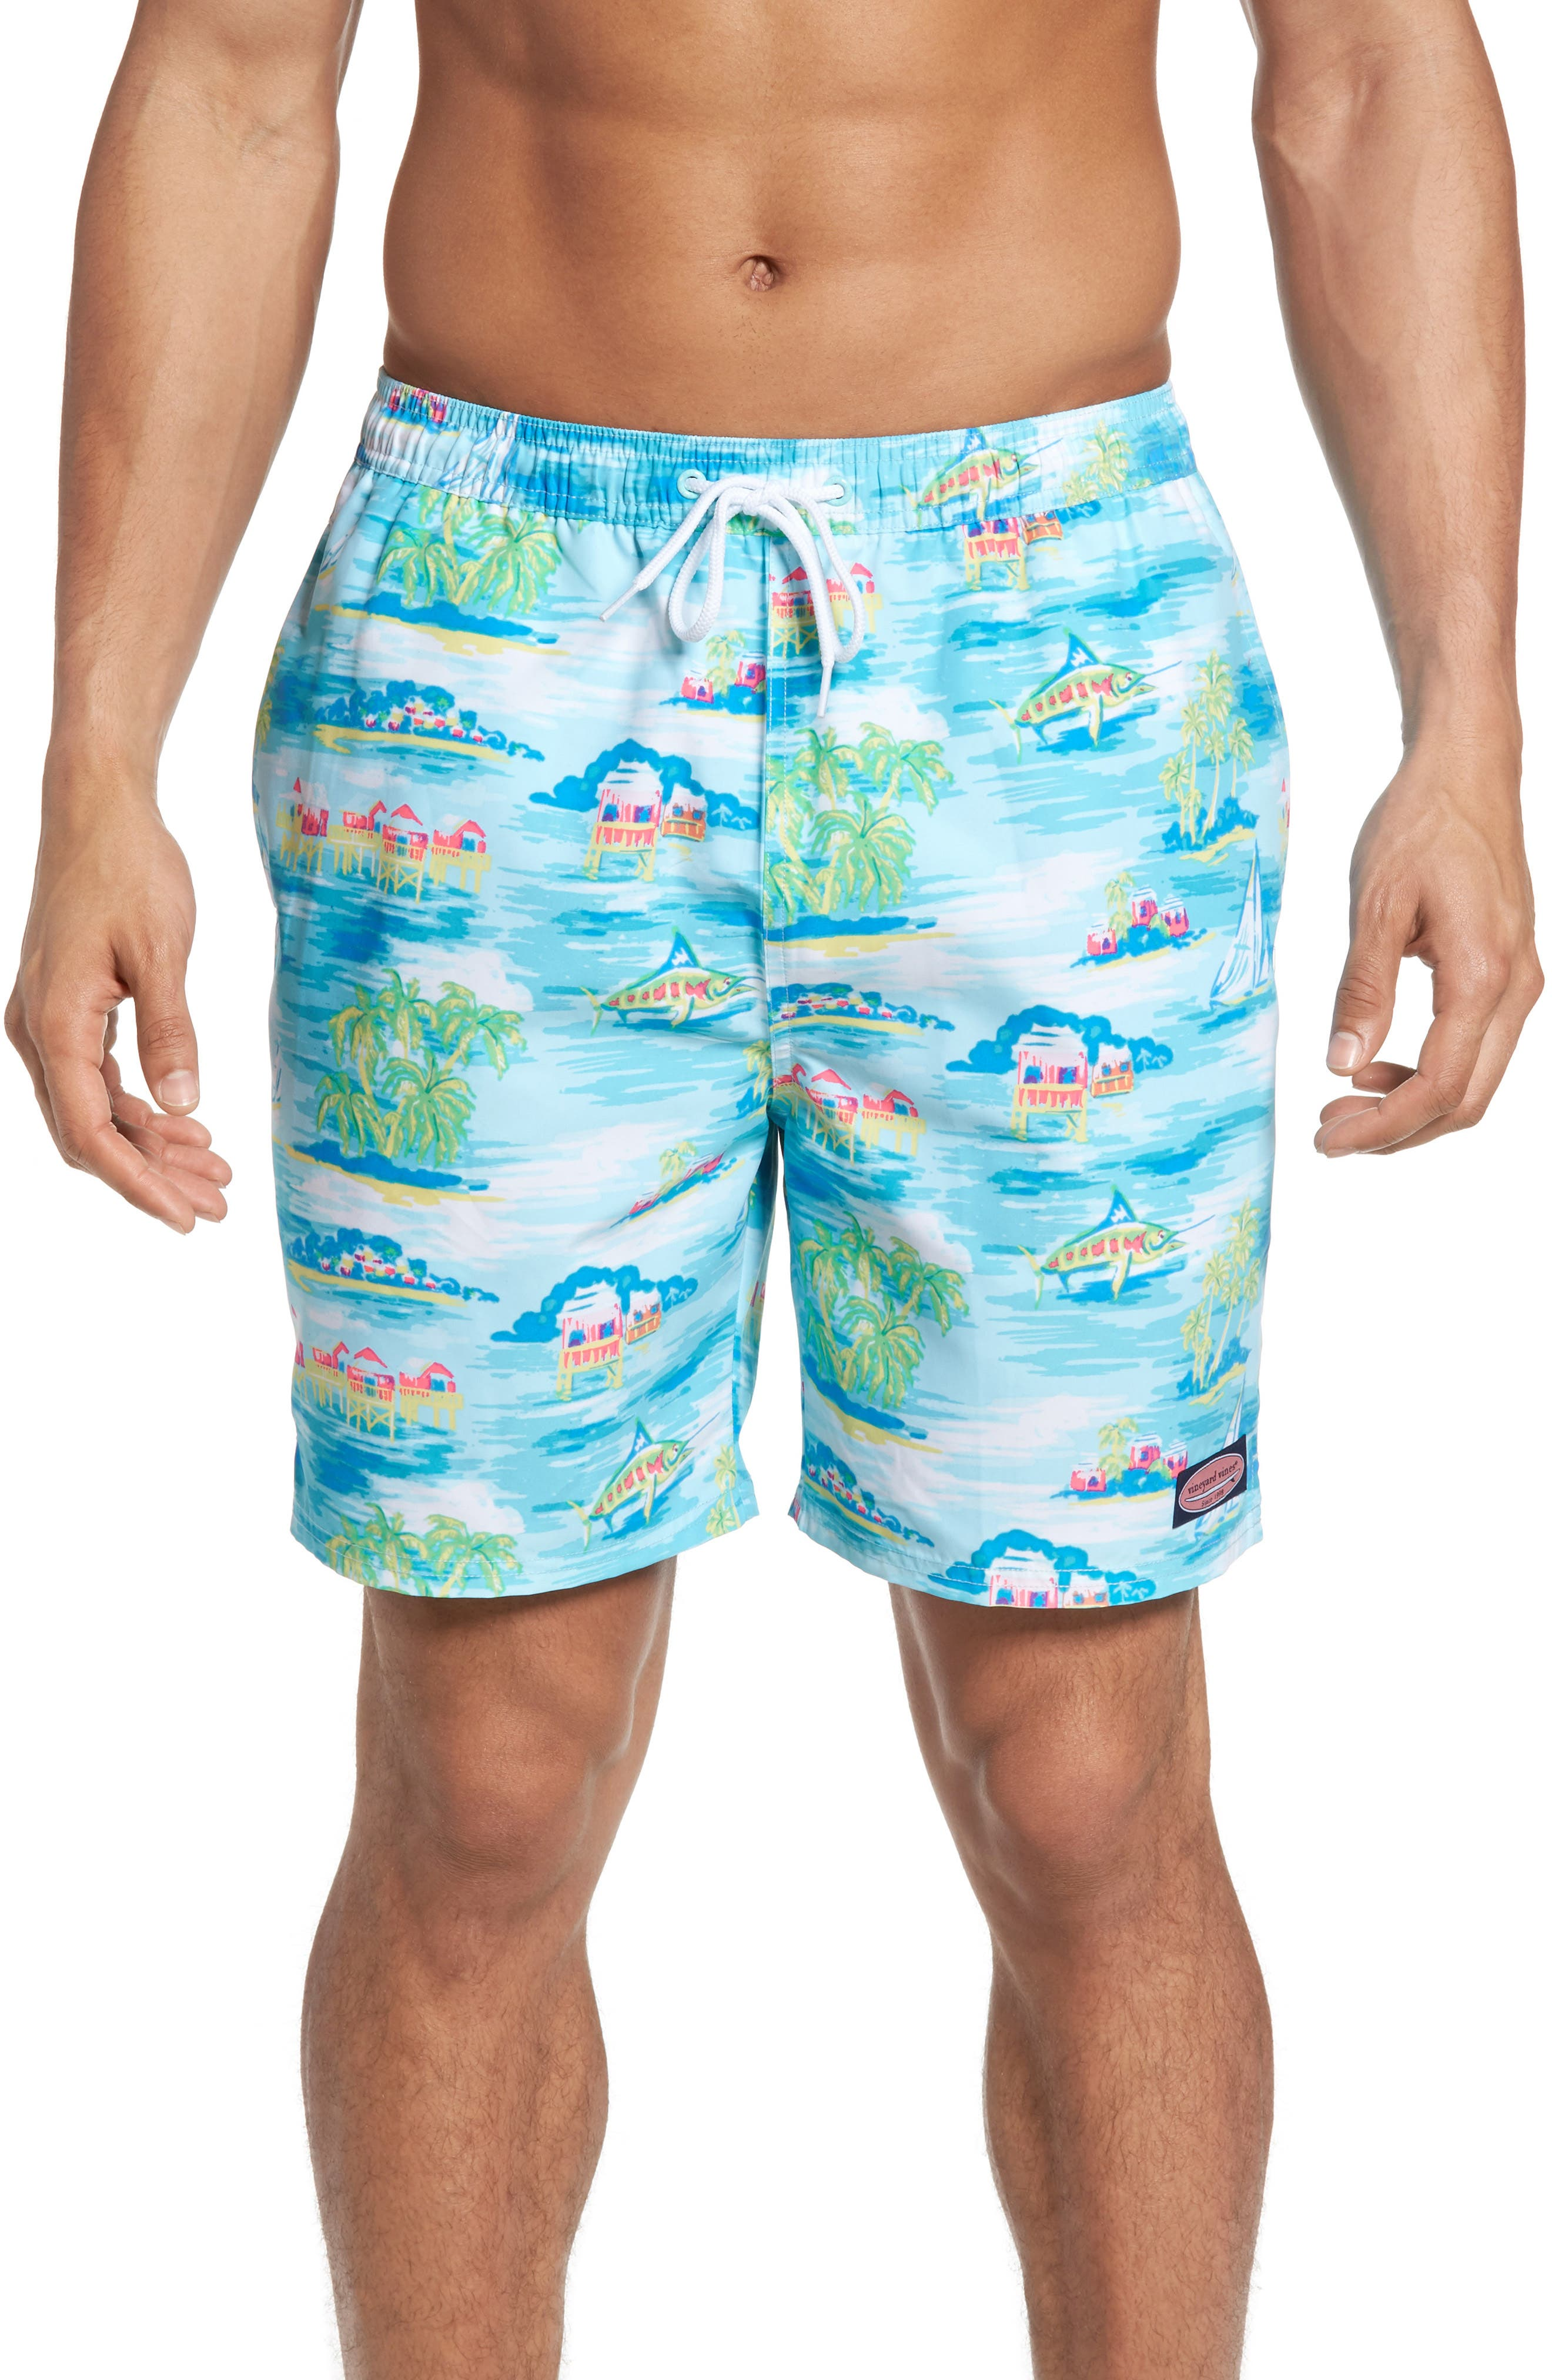 Vineyard Vines Beach Hut Scenic Chappy Swim Trunks